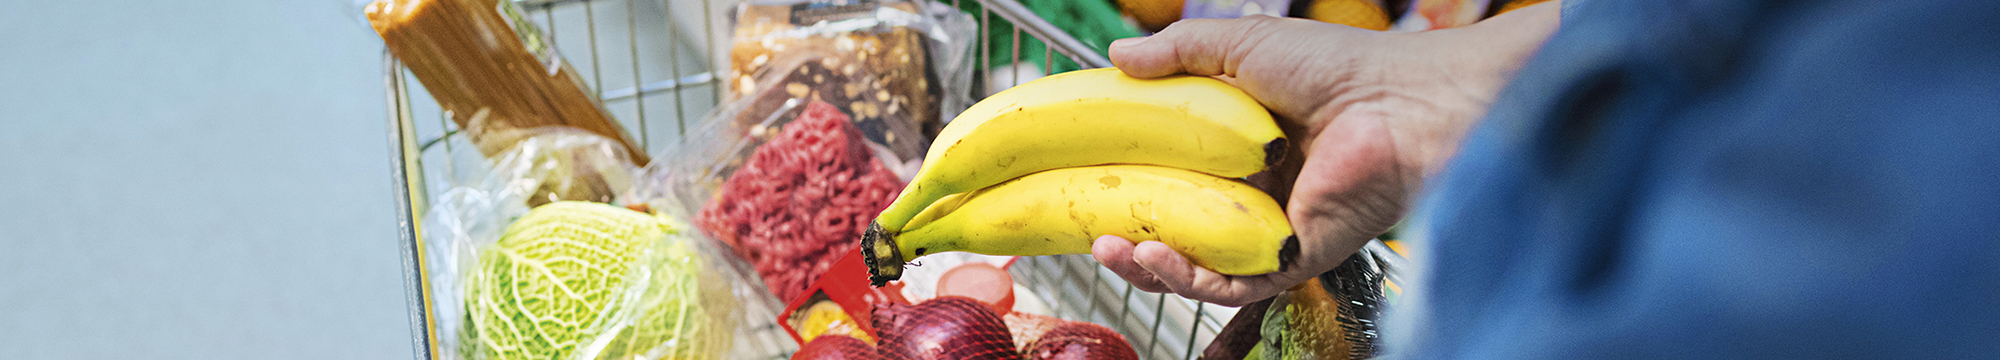 A person putting a bunch of bananas into a shopping trolley at a supermarket